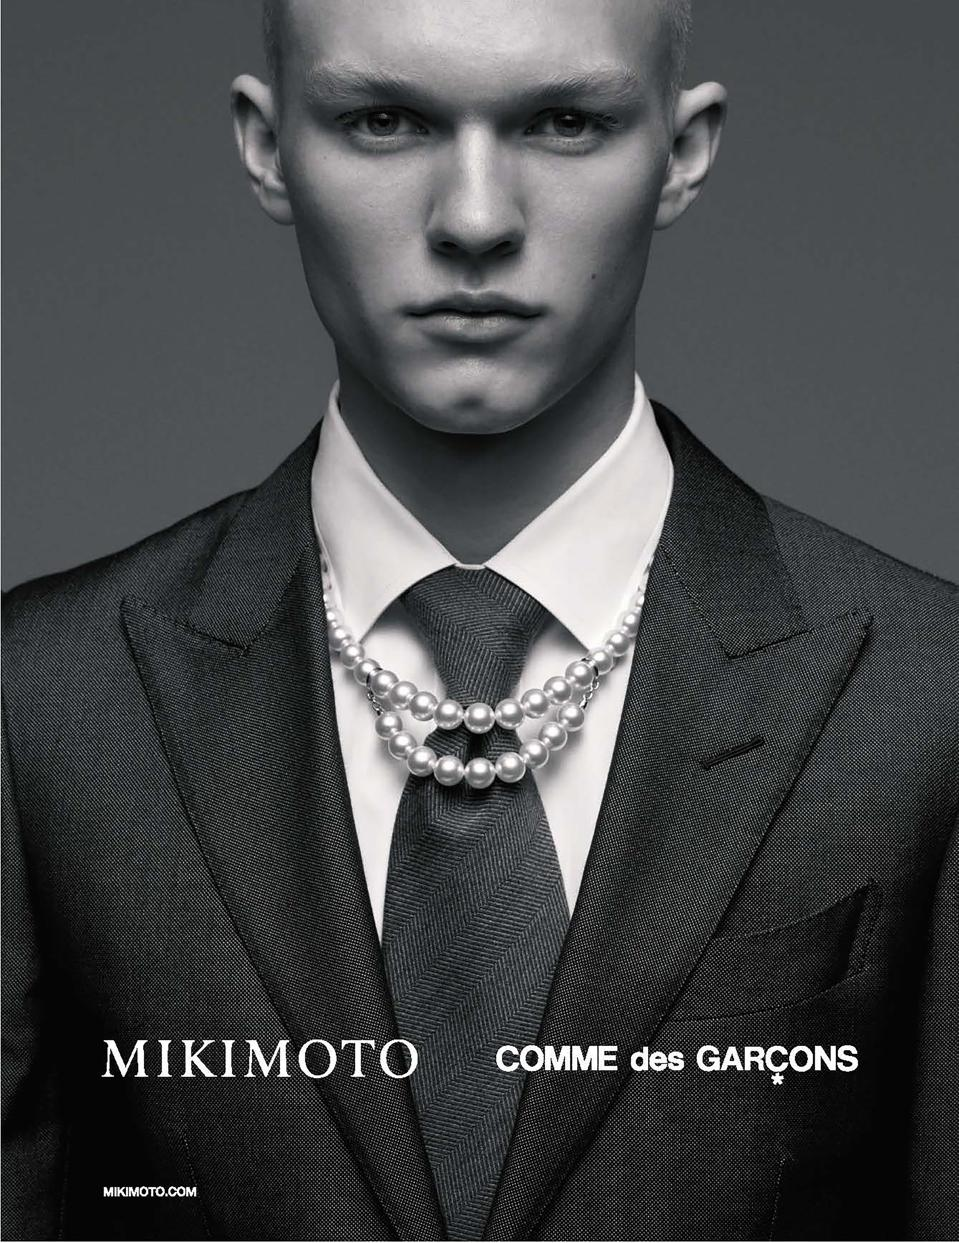 The Comme des Garçons x Mikimoto ad, shot by Kazumi Kurigami and featuring Kalle Meye at Select.